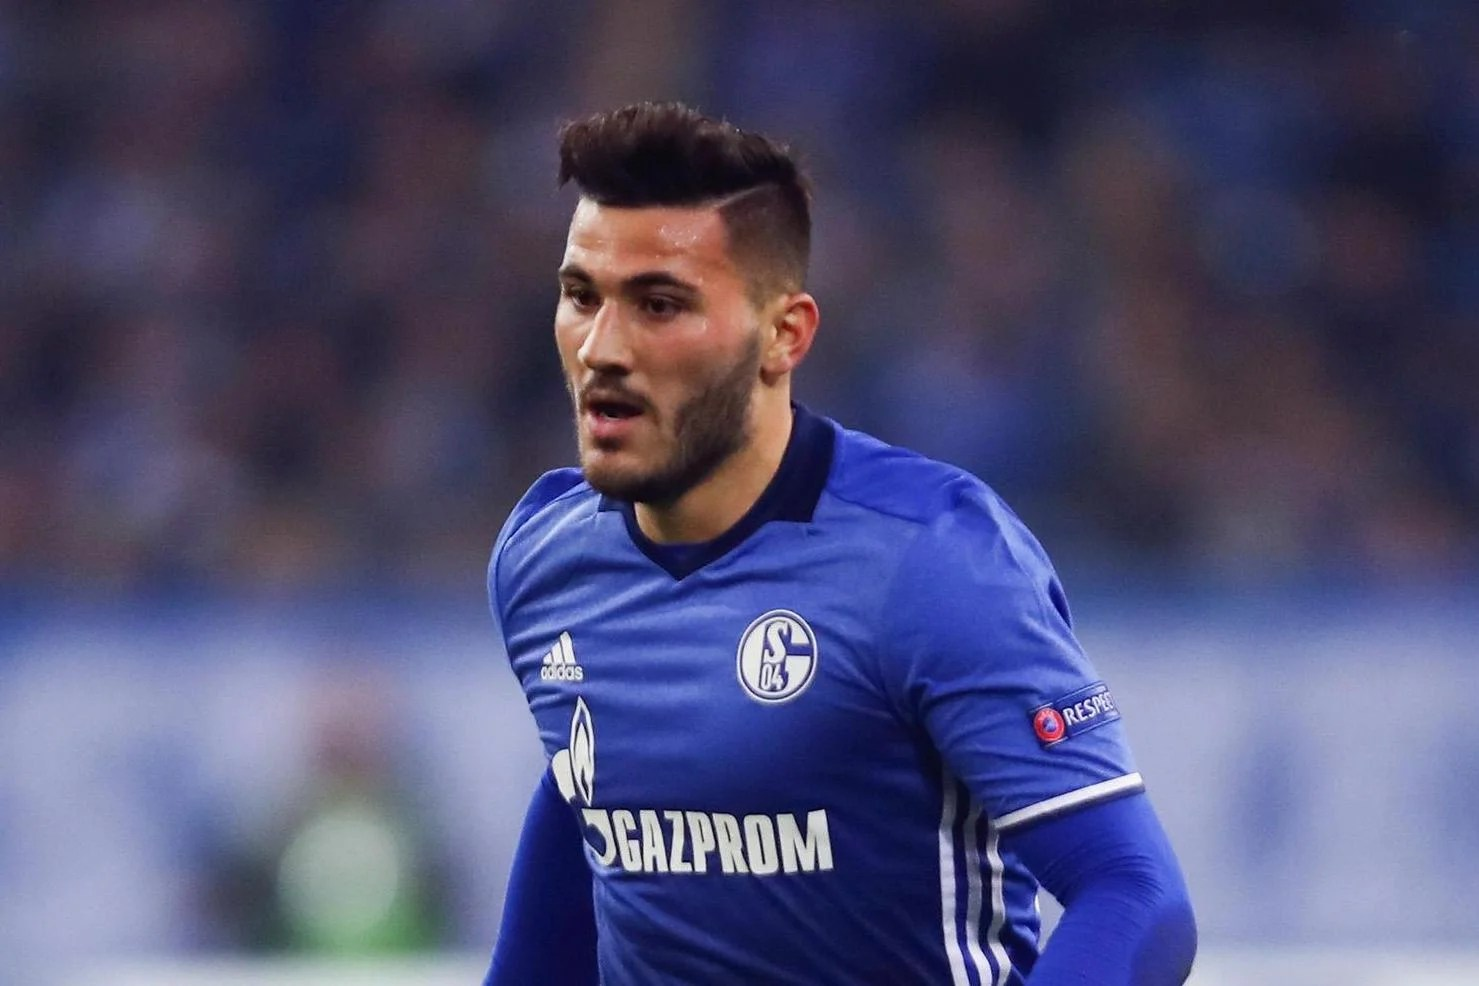 Sead Kolasinac to Chelsea transfer news Antonio Conte faces late battle with Juventus to sign